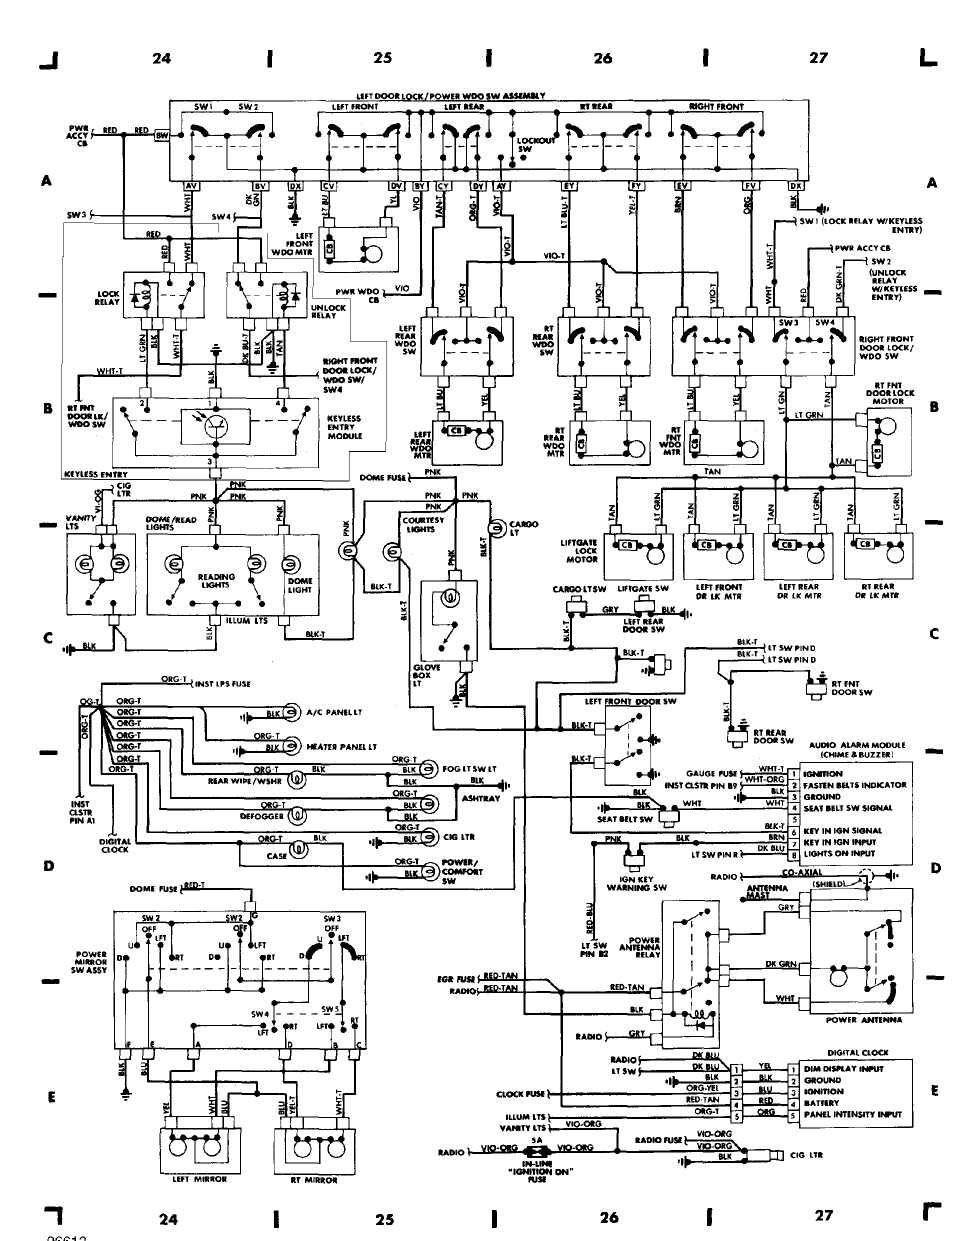 wiring_diagrams_html_61f5e0ad wiring diagrams 1984 1991 jeep cherokee (xj) jeep 1998 jeep grand cherokee wiring diagrams pdf at webbmarketing.co